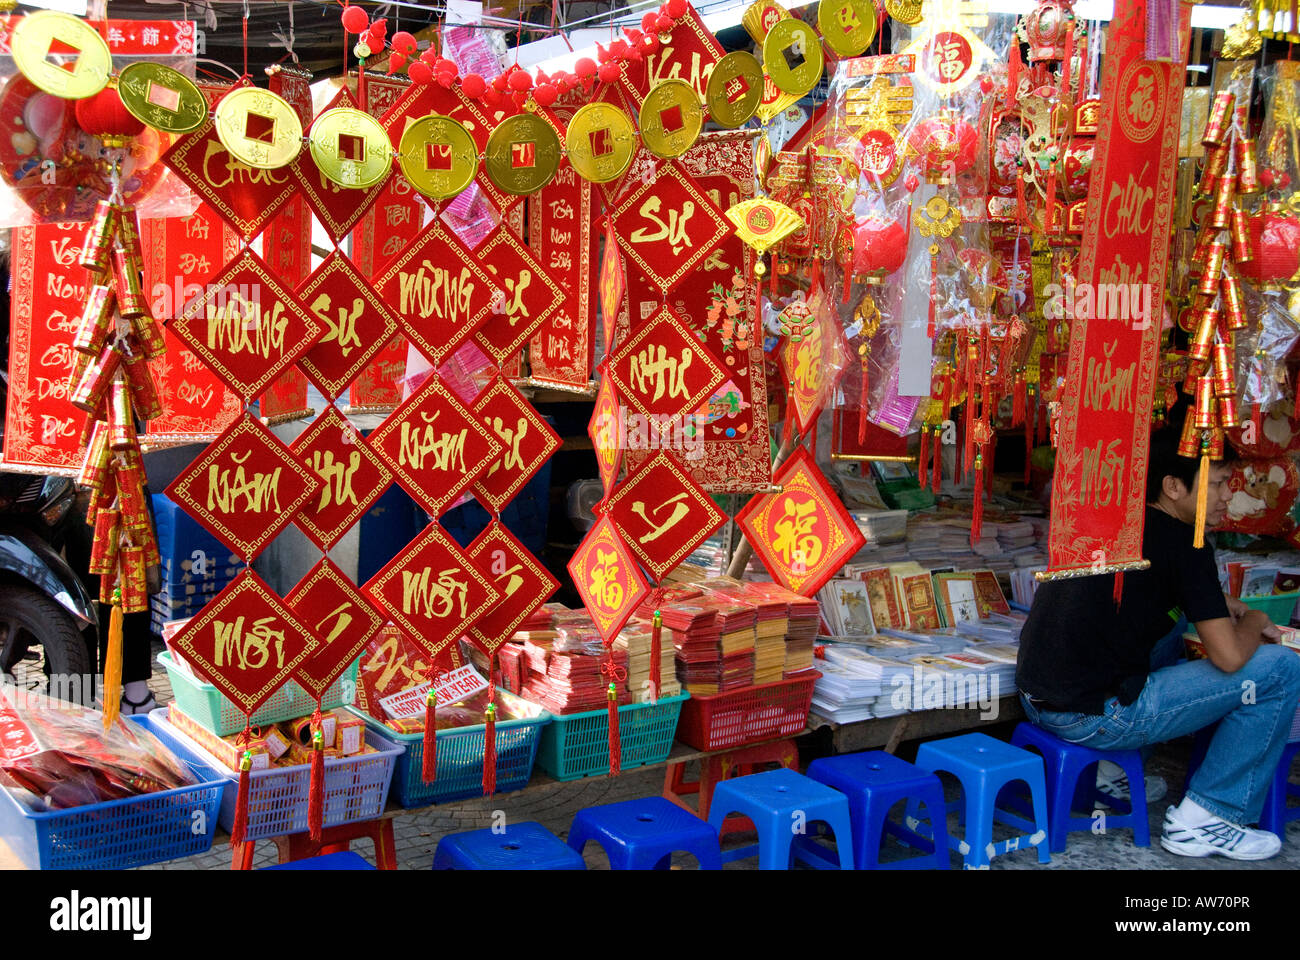 New year greeting card vietnam stock photos new year greeting card cards and decorations on sale to celebrate the vietnamese lunar new year tet stock m4hsunfo